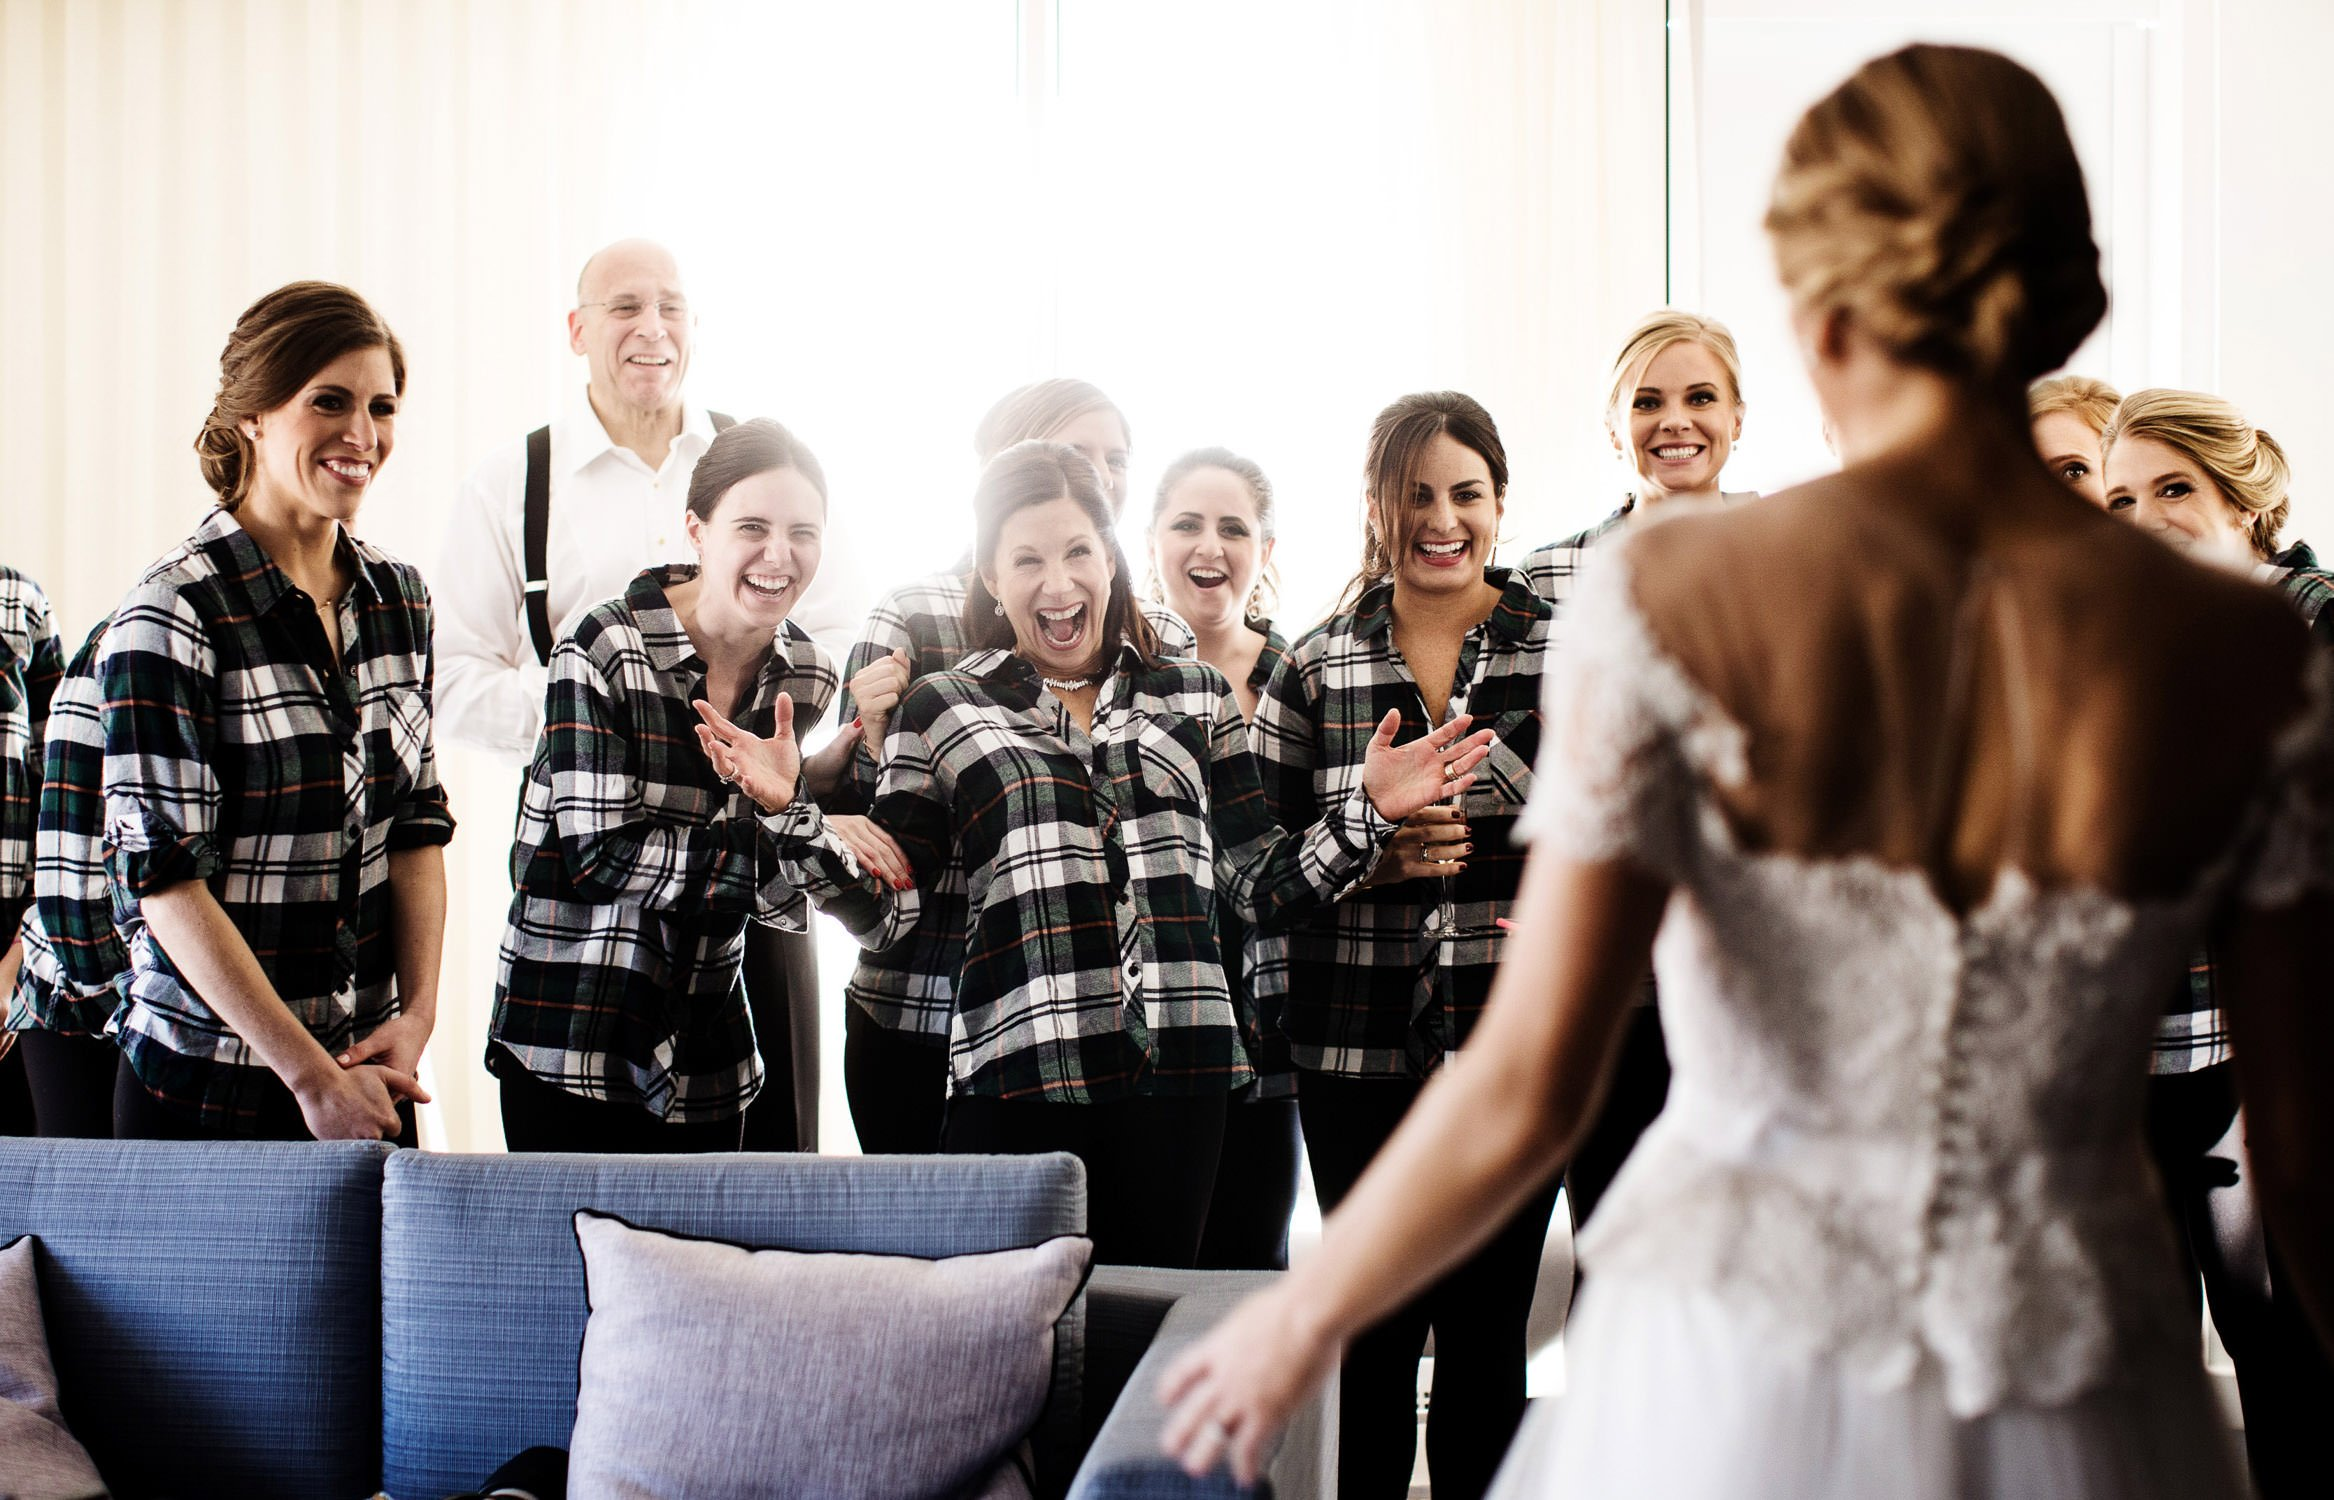 The bride is greeted by her bridal party at the Willard Hotel in DC.